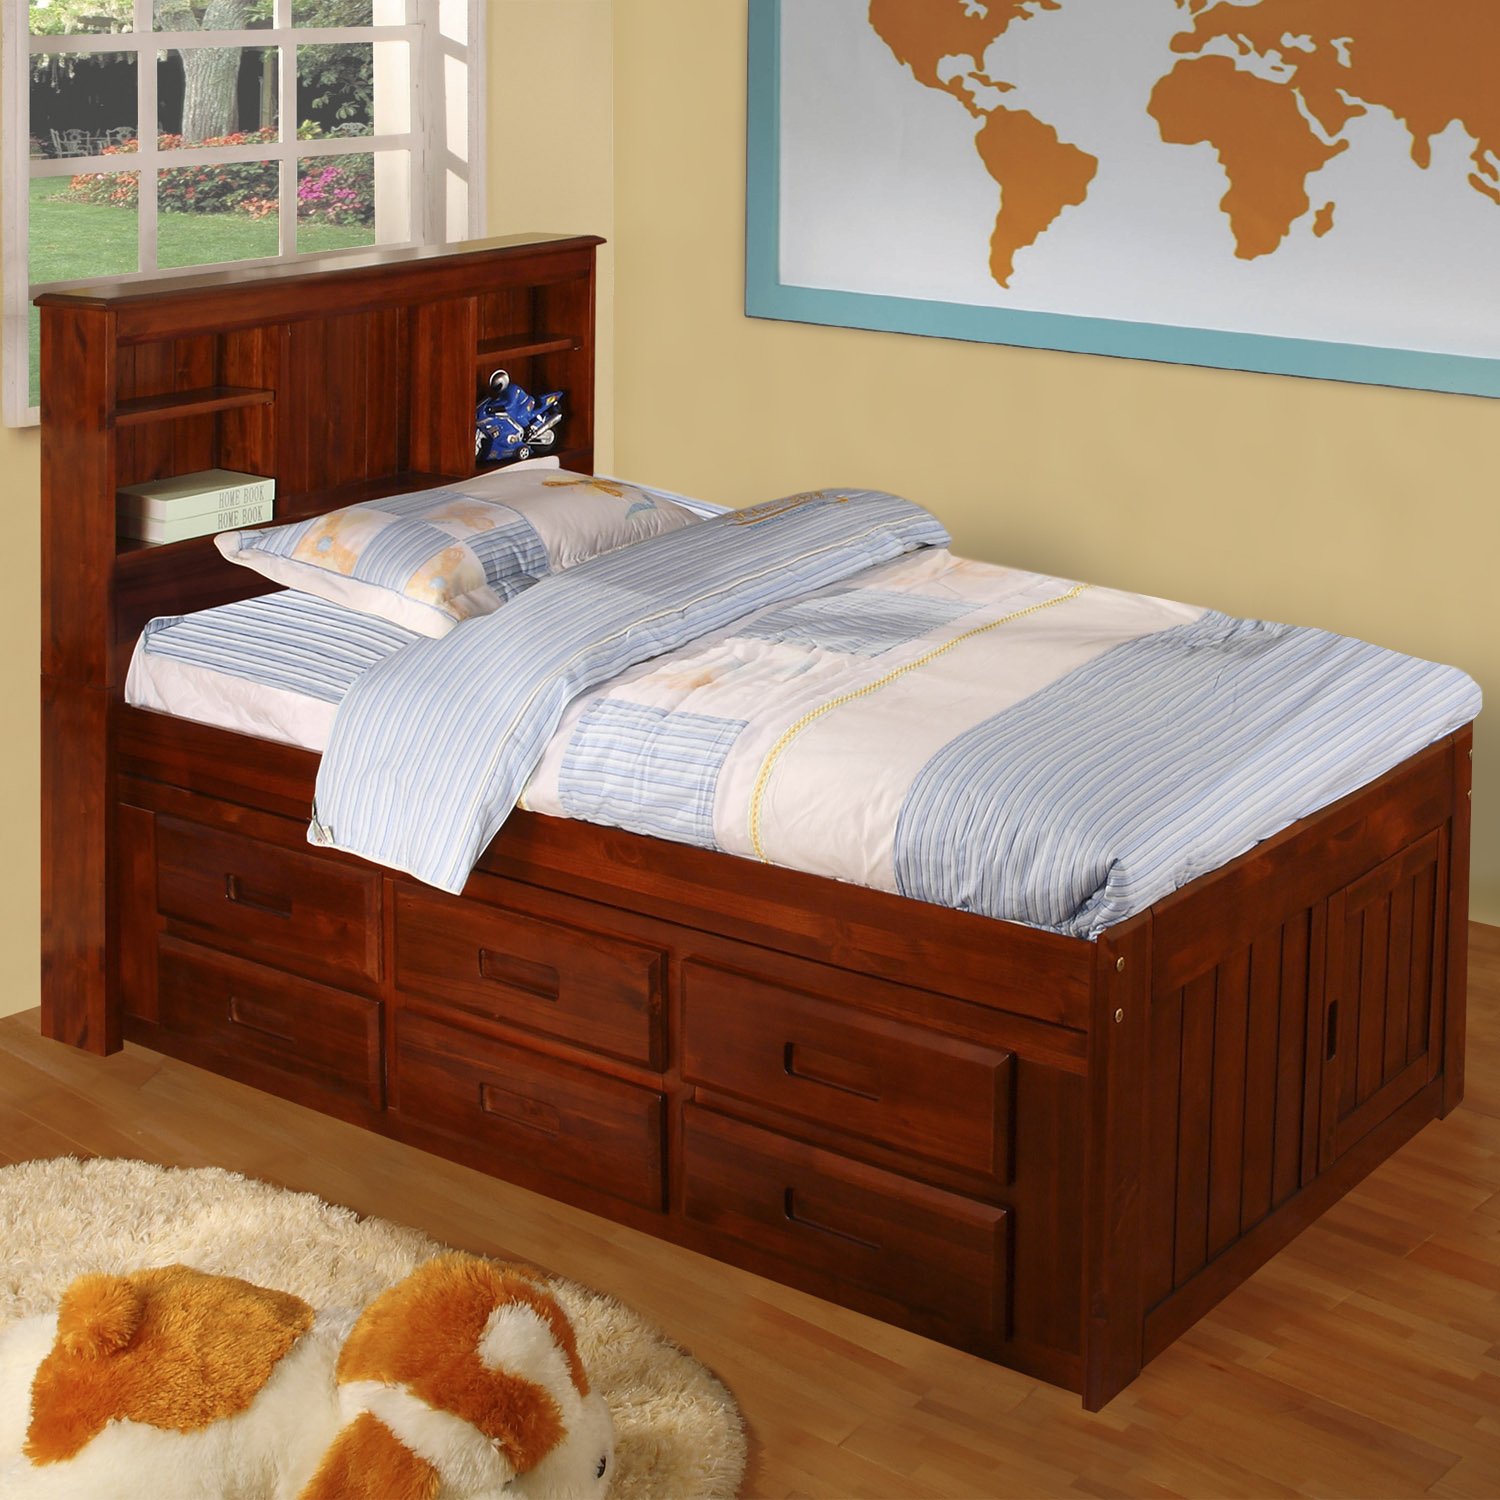 American Furniture Classics Model 2820-BCM, Solid Pine Bookcase Headboard Twin with Six Drawers in Merlot